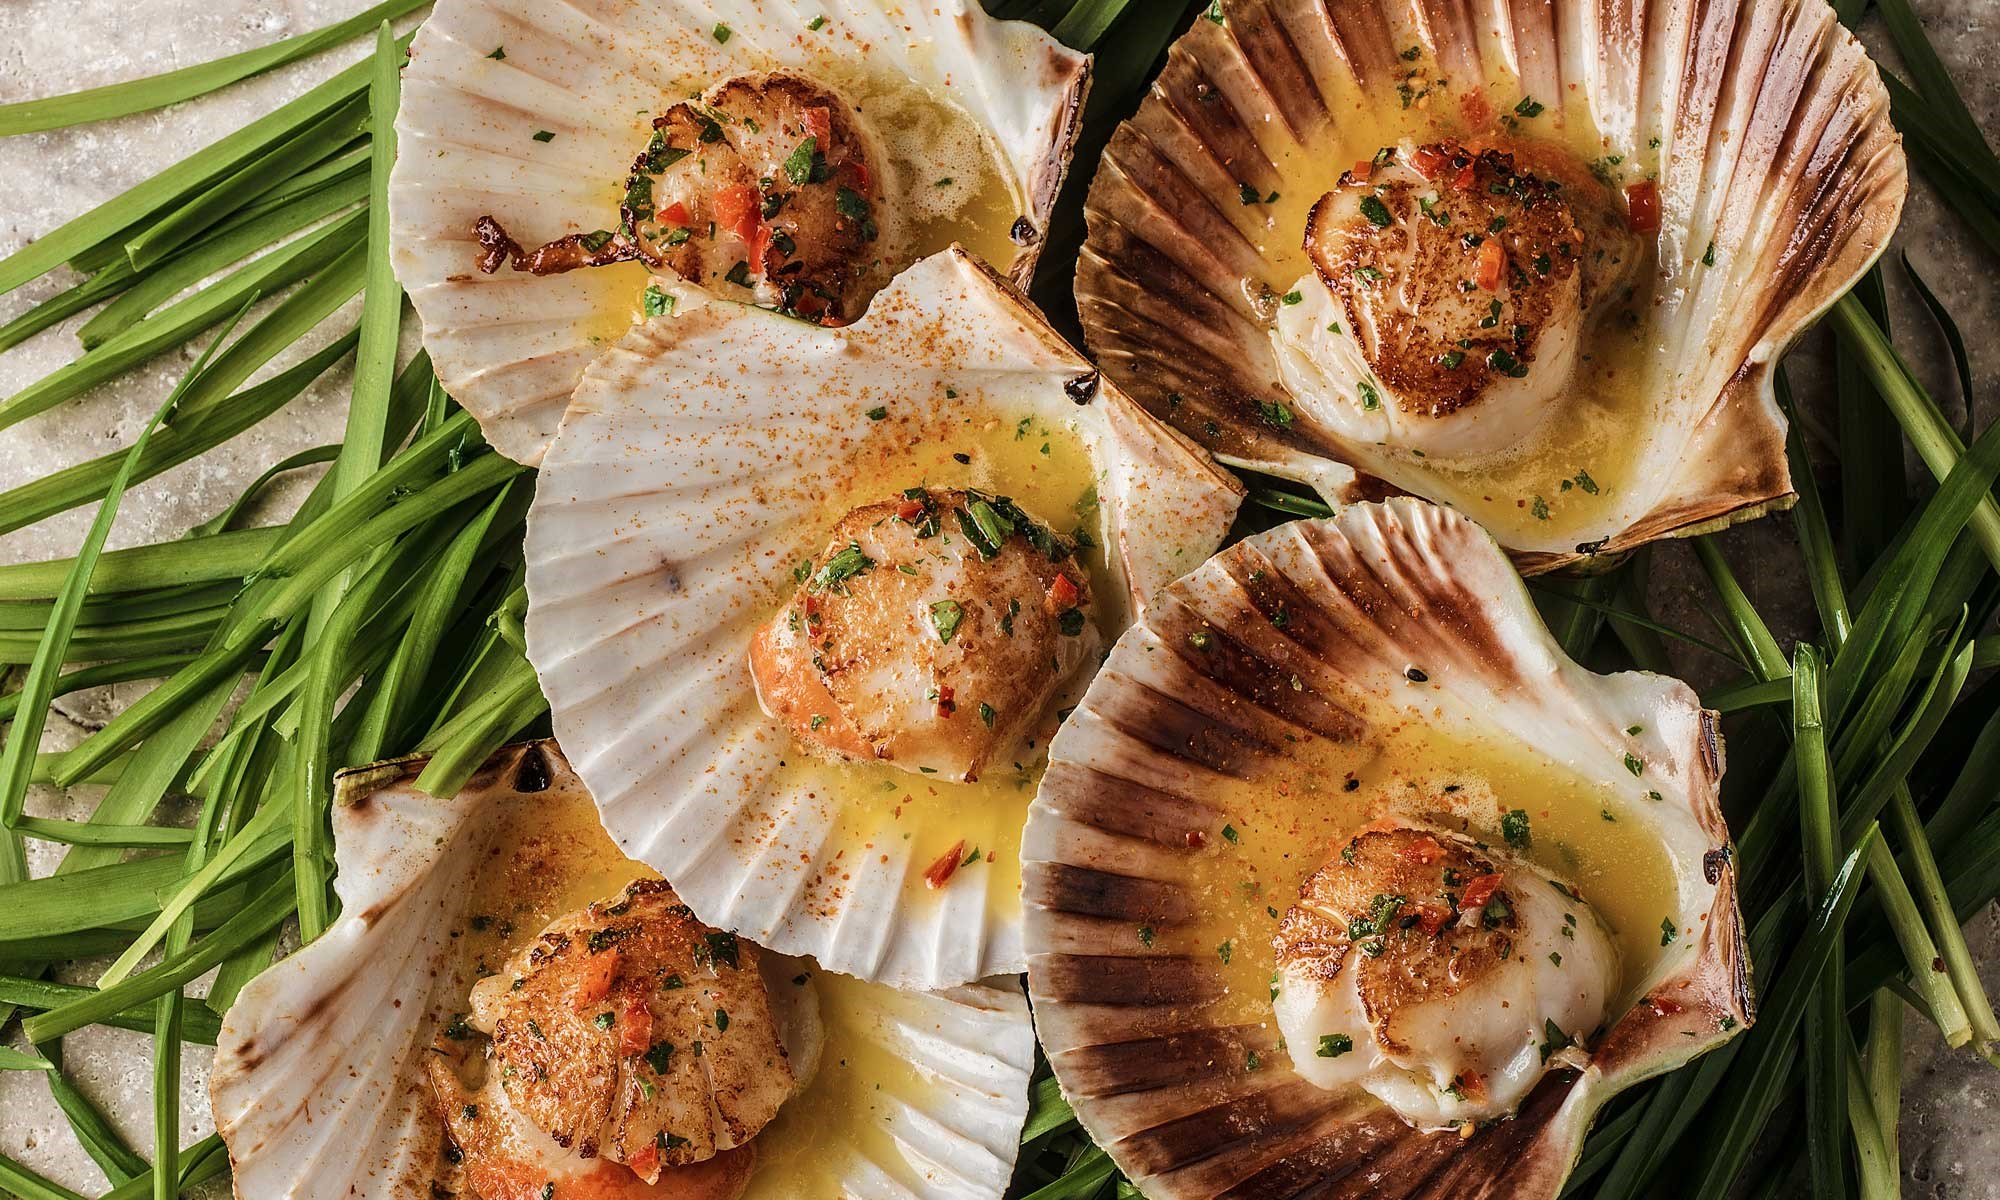 J Sheekey Isle of Mull Scallops in the half shell with chilli garlic butter by Romas Foord